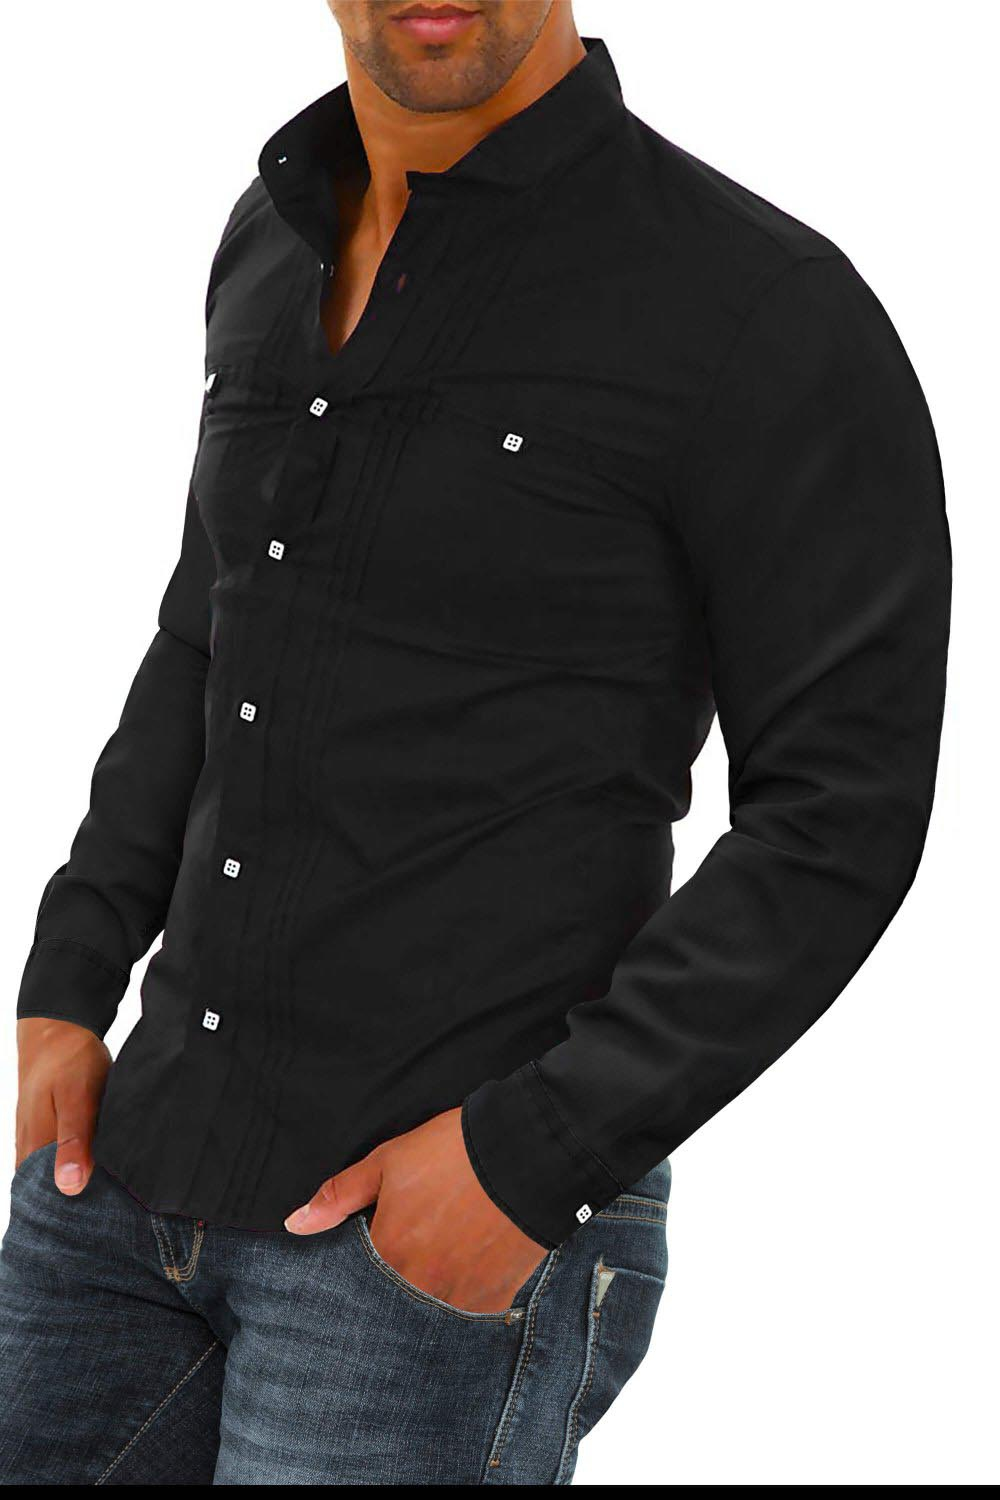 chemise en jean noir pour homme site de v tements en jean la mode. Black Bedroom Furniture Sets. Home Design Ideas